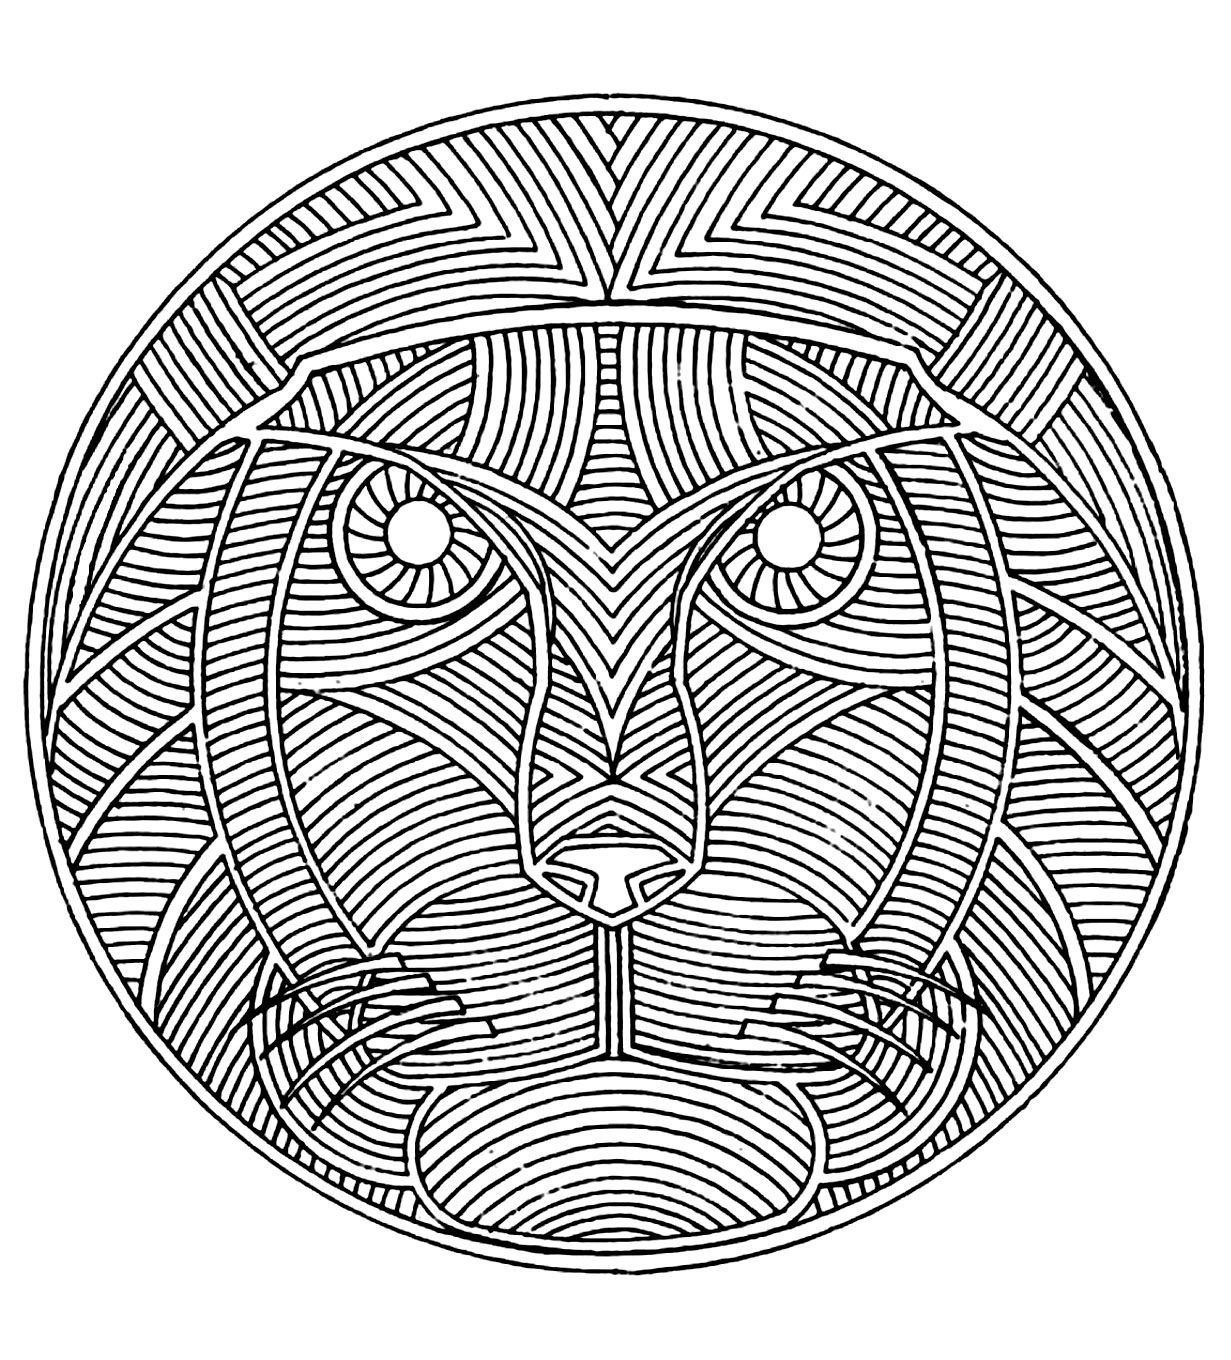 Coloring Page Coloring-Adult-Africa-Mandala. African Mandala à Mandala À Colorier Adulte